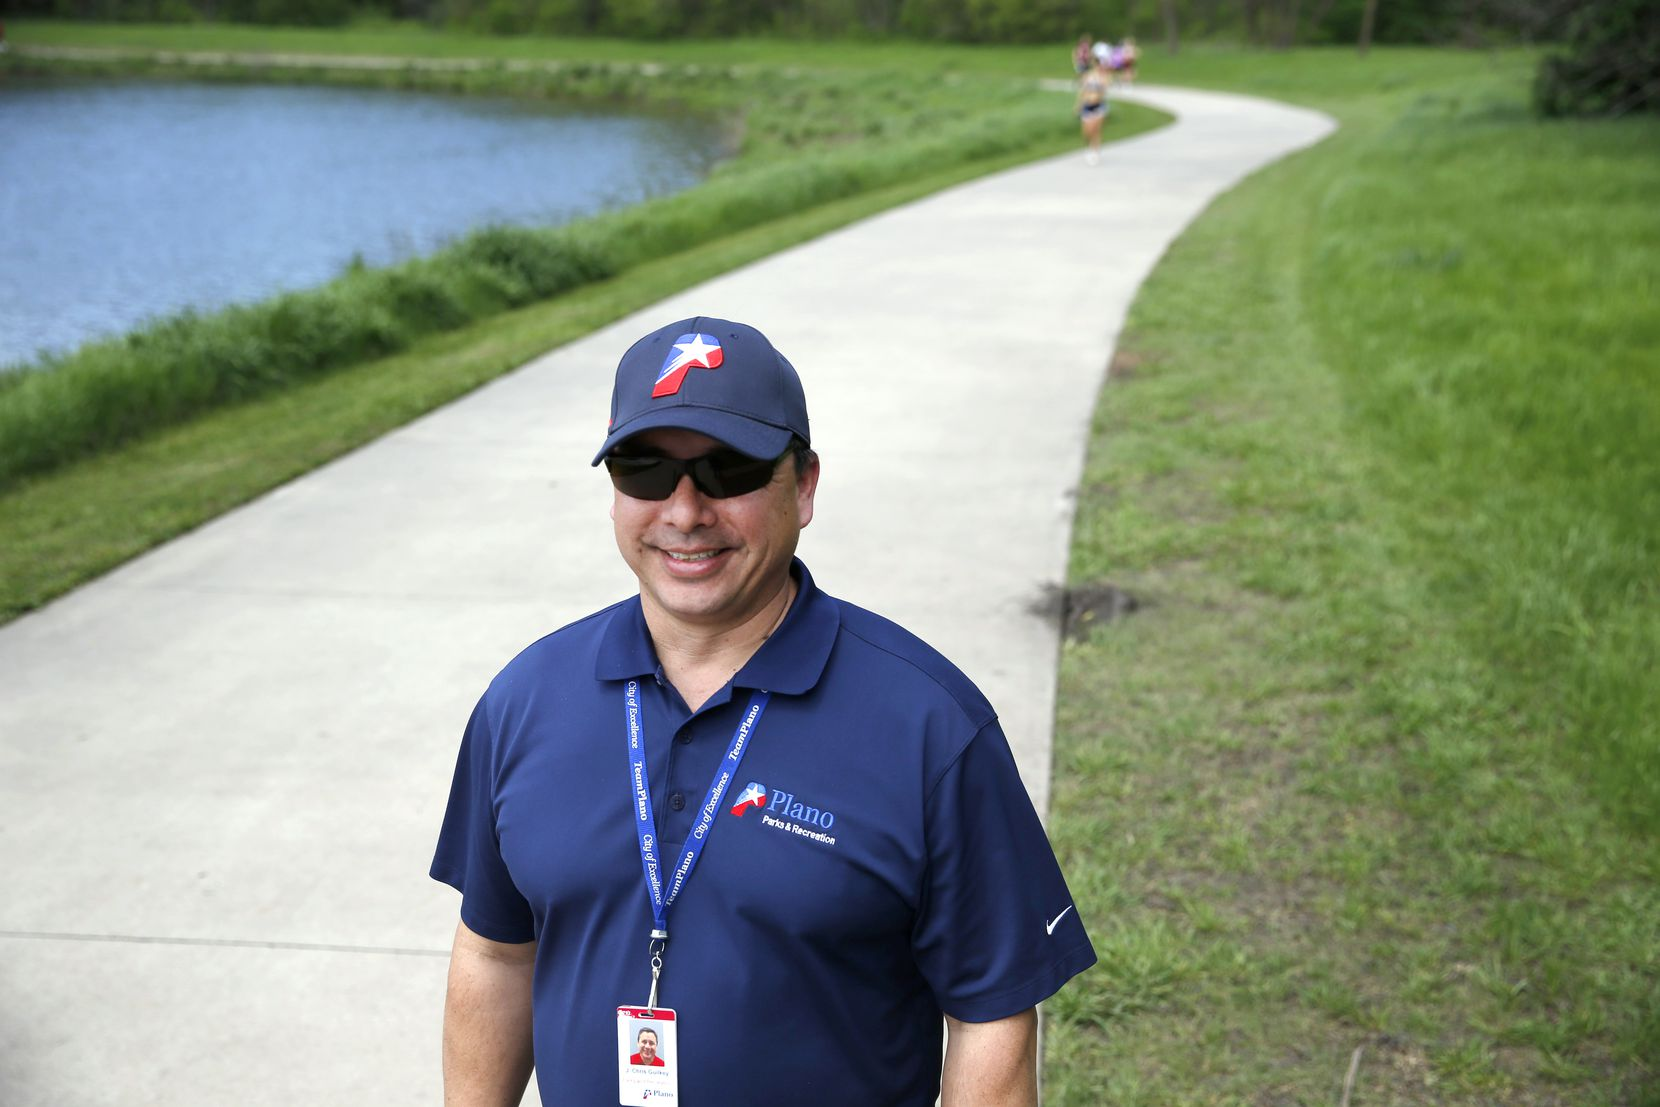 """Chris Guilkey, a business analyst with the Plano Parks and Recreation Department, has also been working as a """"friendly monitor,"""" breaking up groups and encouraging social distancing, at the city's Oak Point Nature Preserve."""